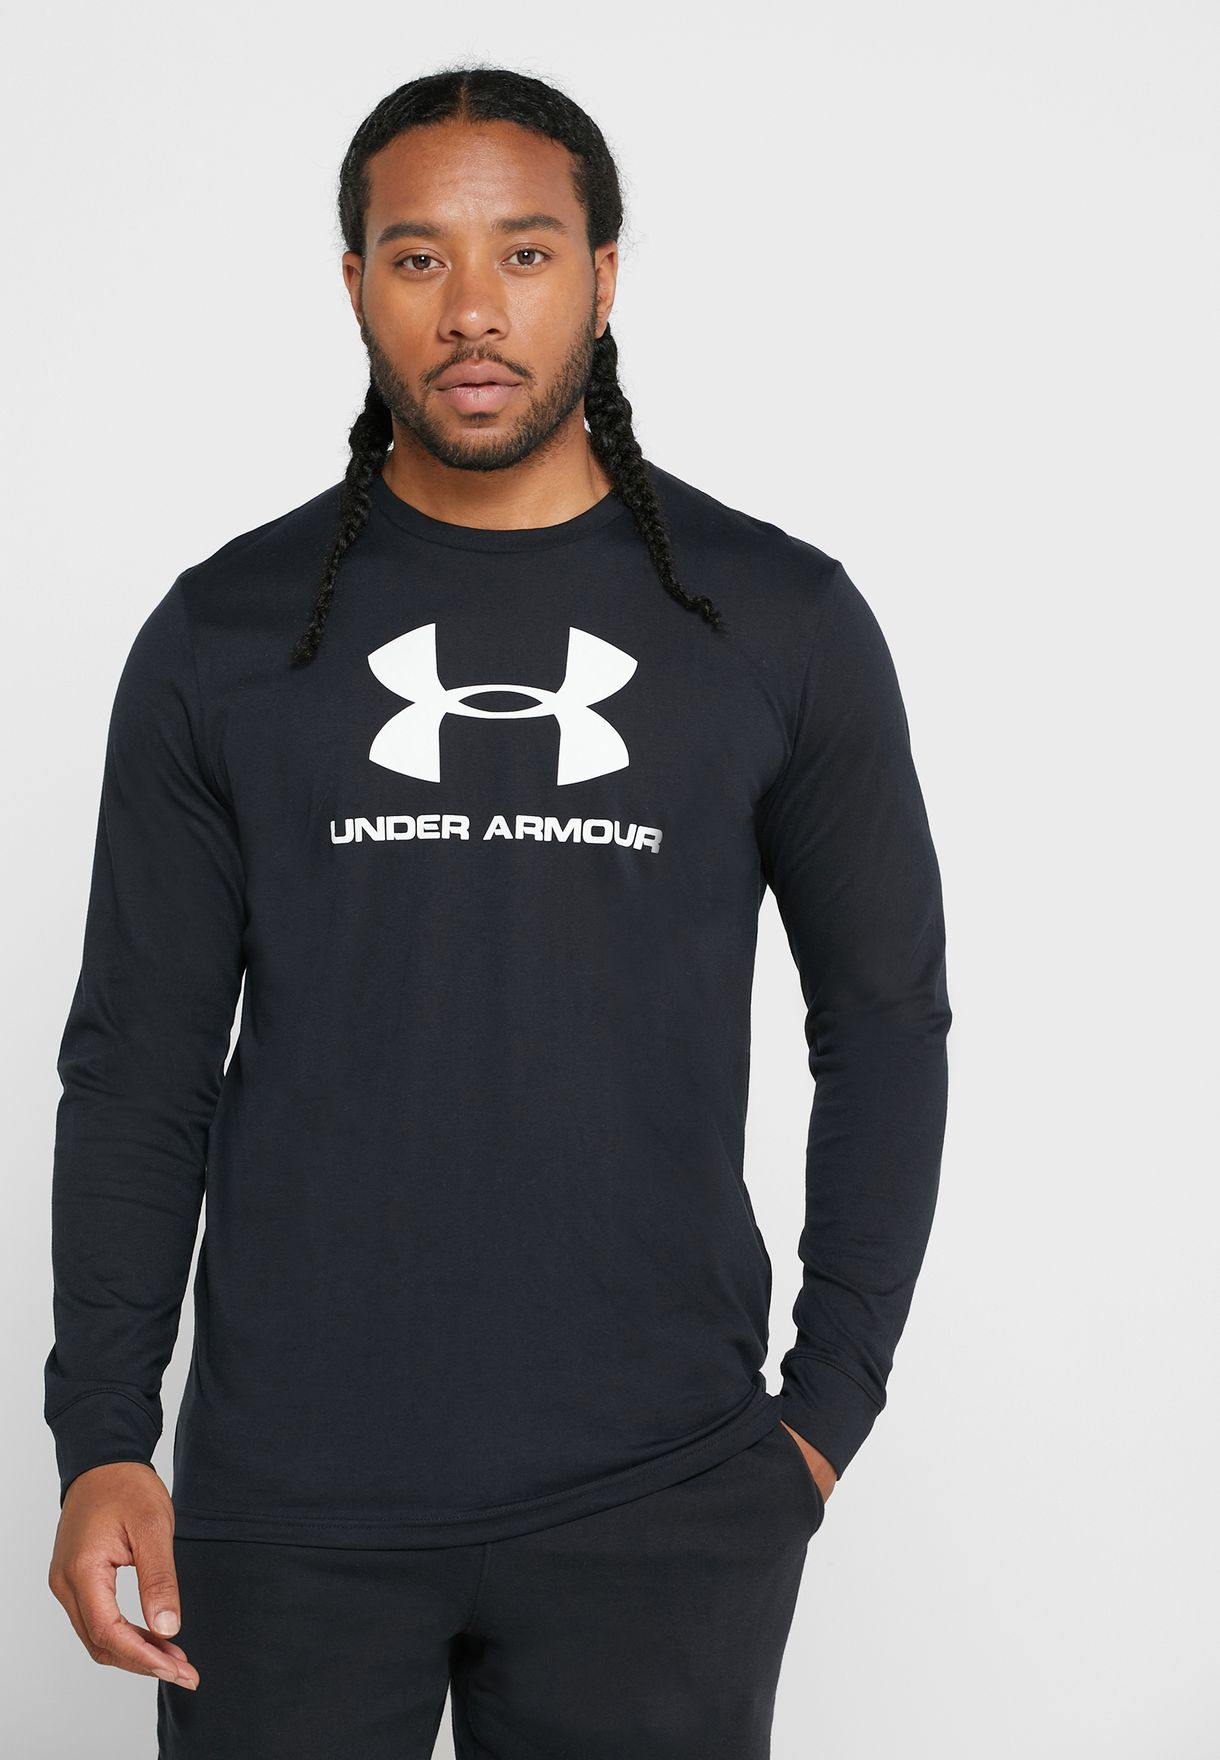 Mens Under Armour Sports long sleeve Top black